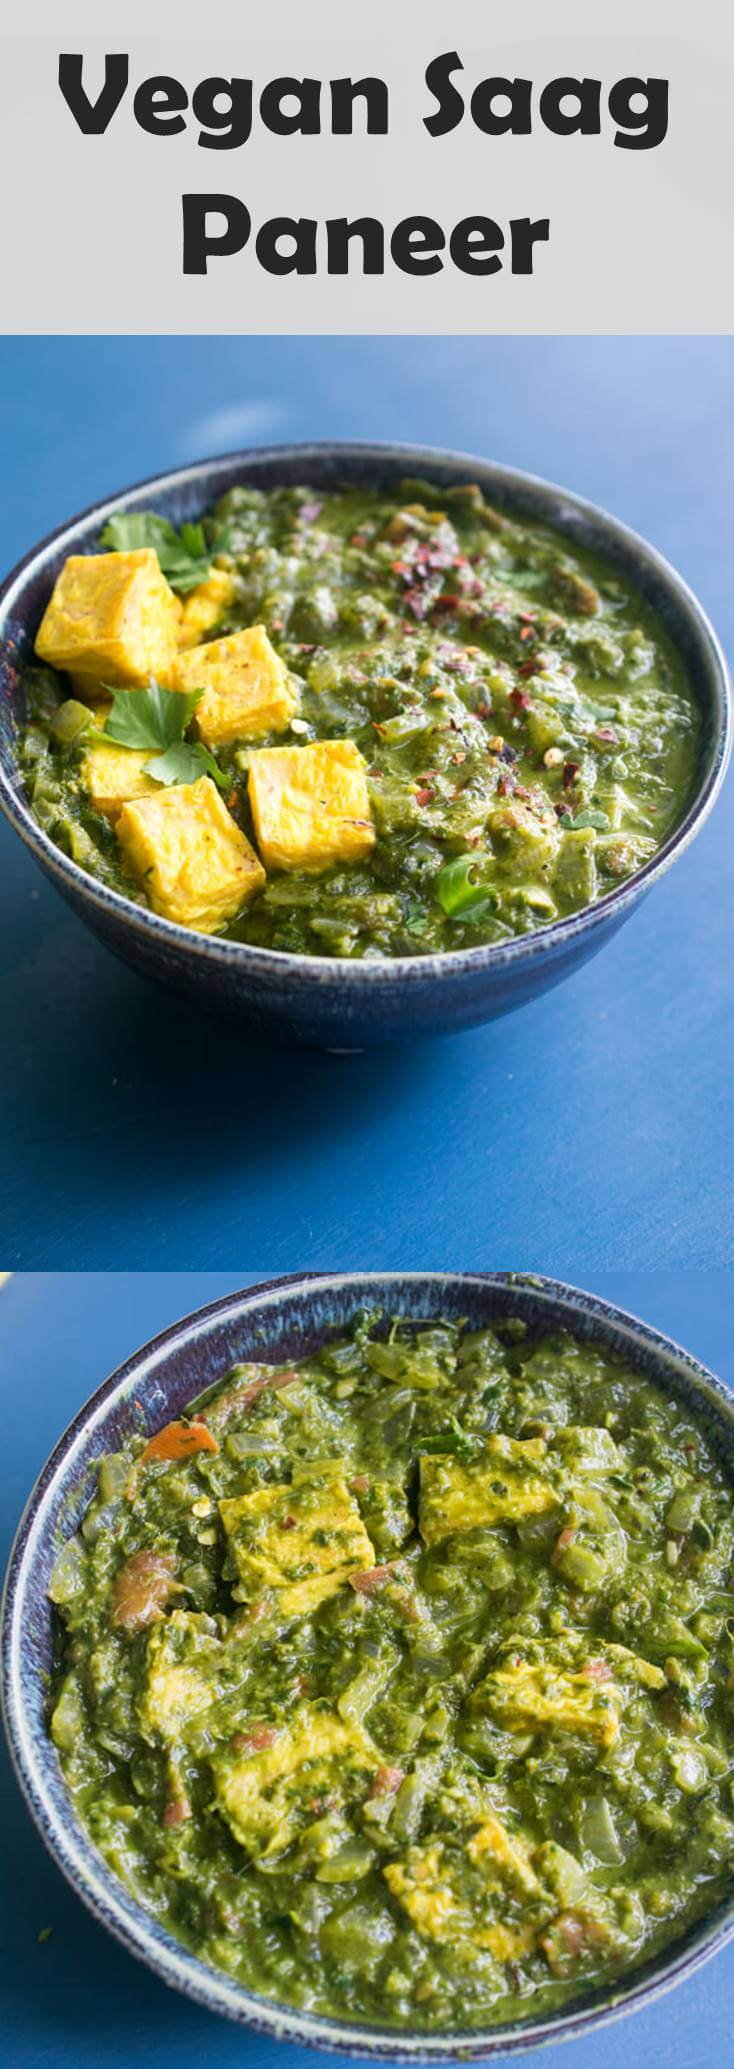 Vegan Saag Paneer. A creamy spinach or kale curry with tofu. You won't miss palak paneer with this dairy-free version that packs 17g of protein per serving.